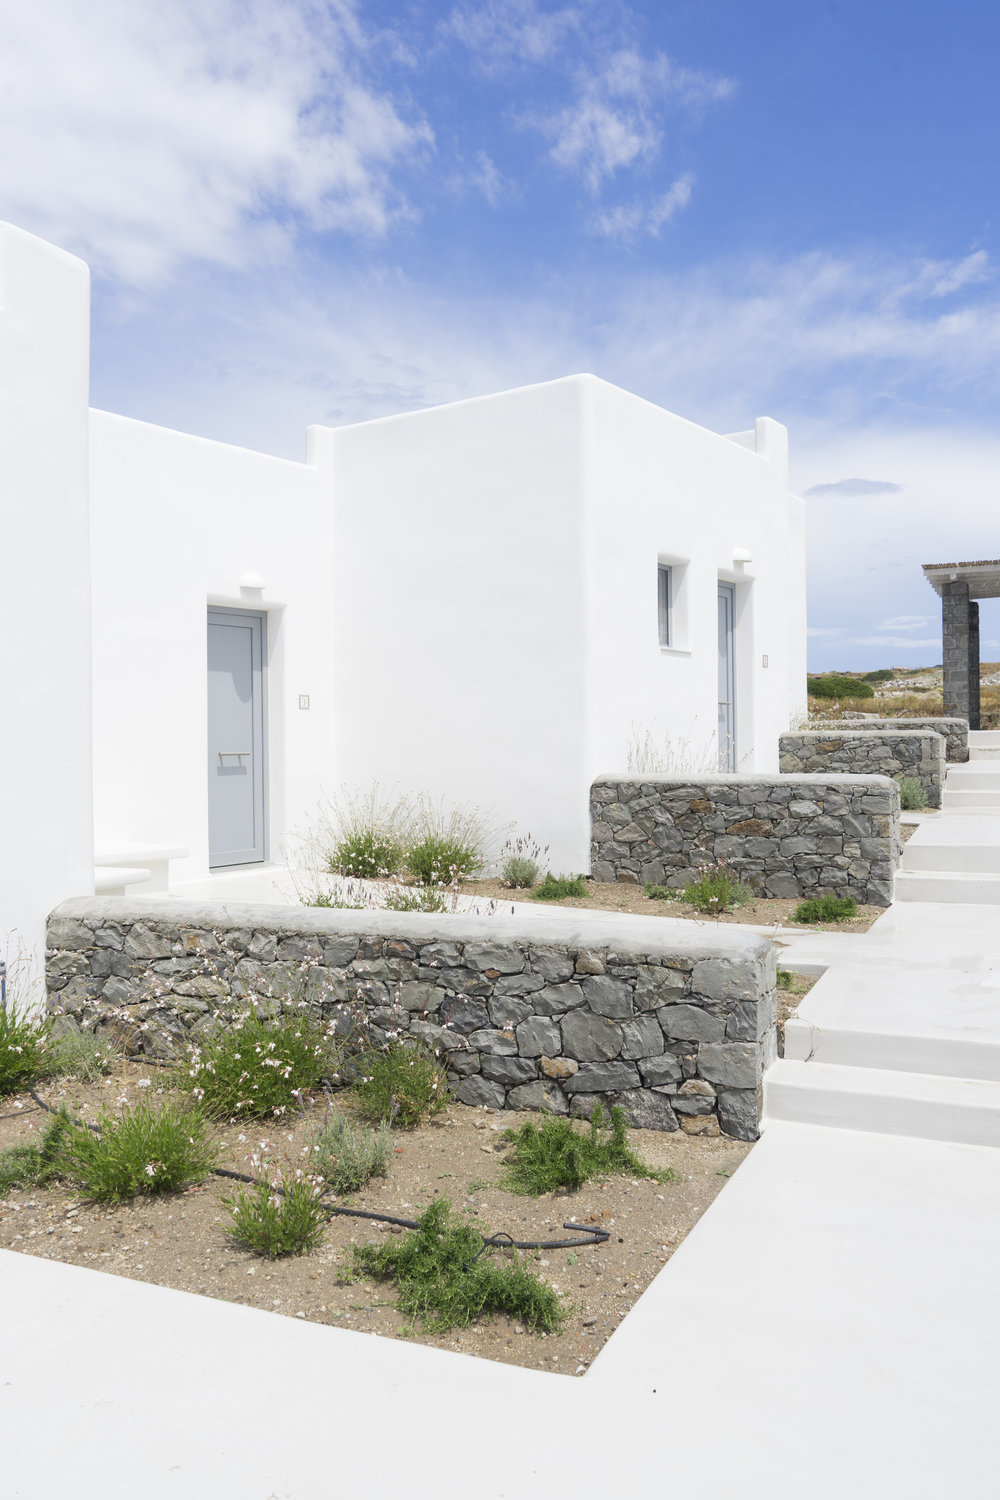 ROSE & IVY Journal Escape to Milos, Stay at Lithos Luxury Suites